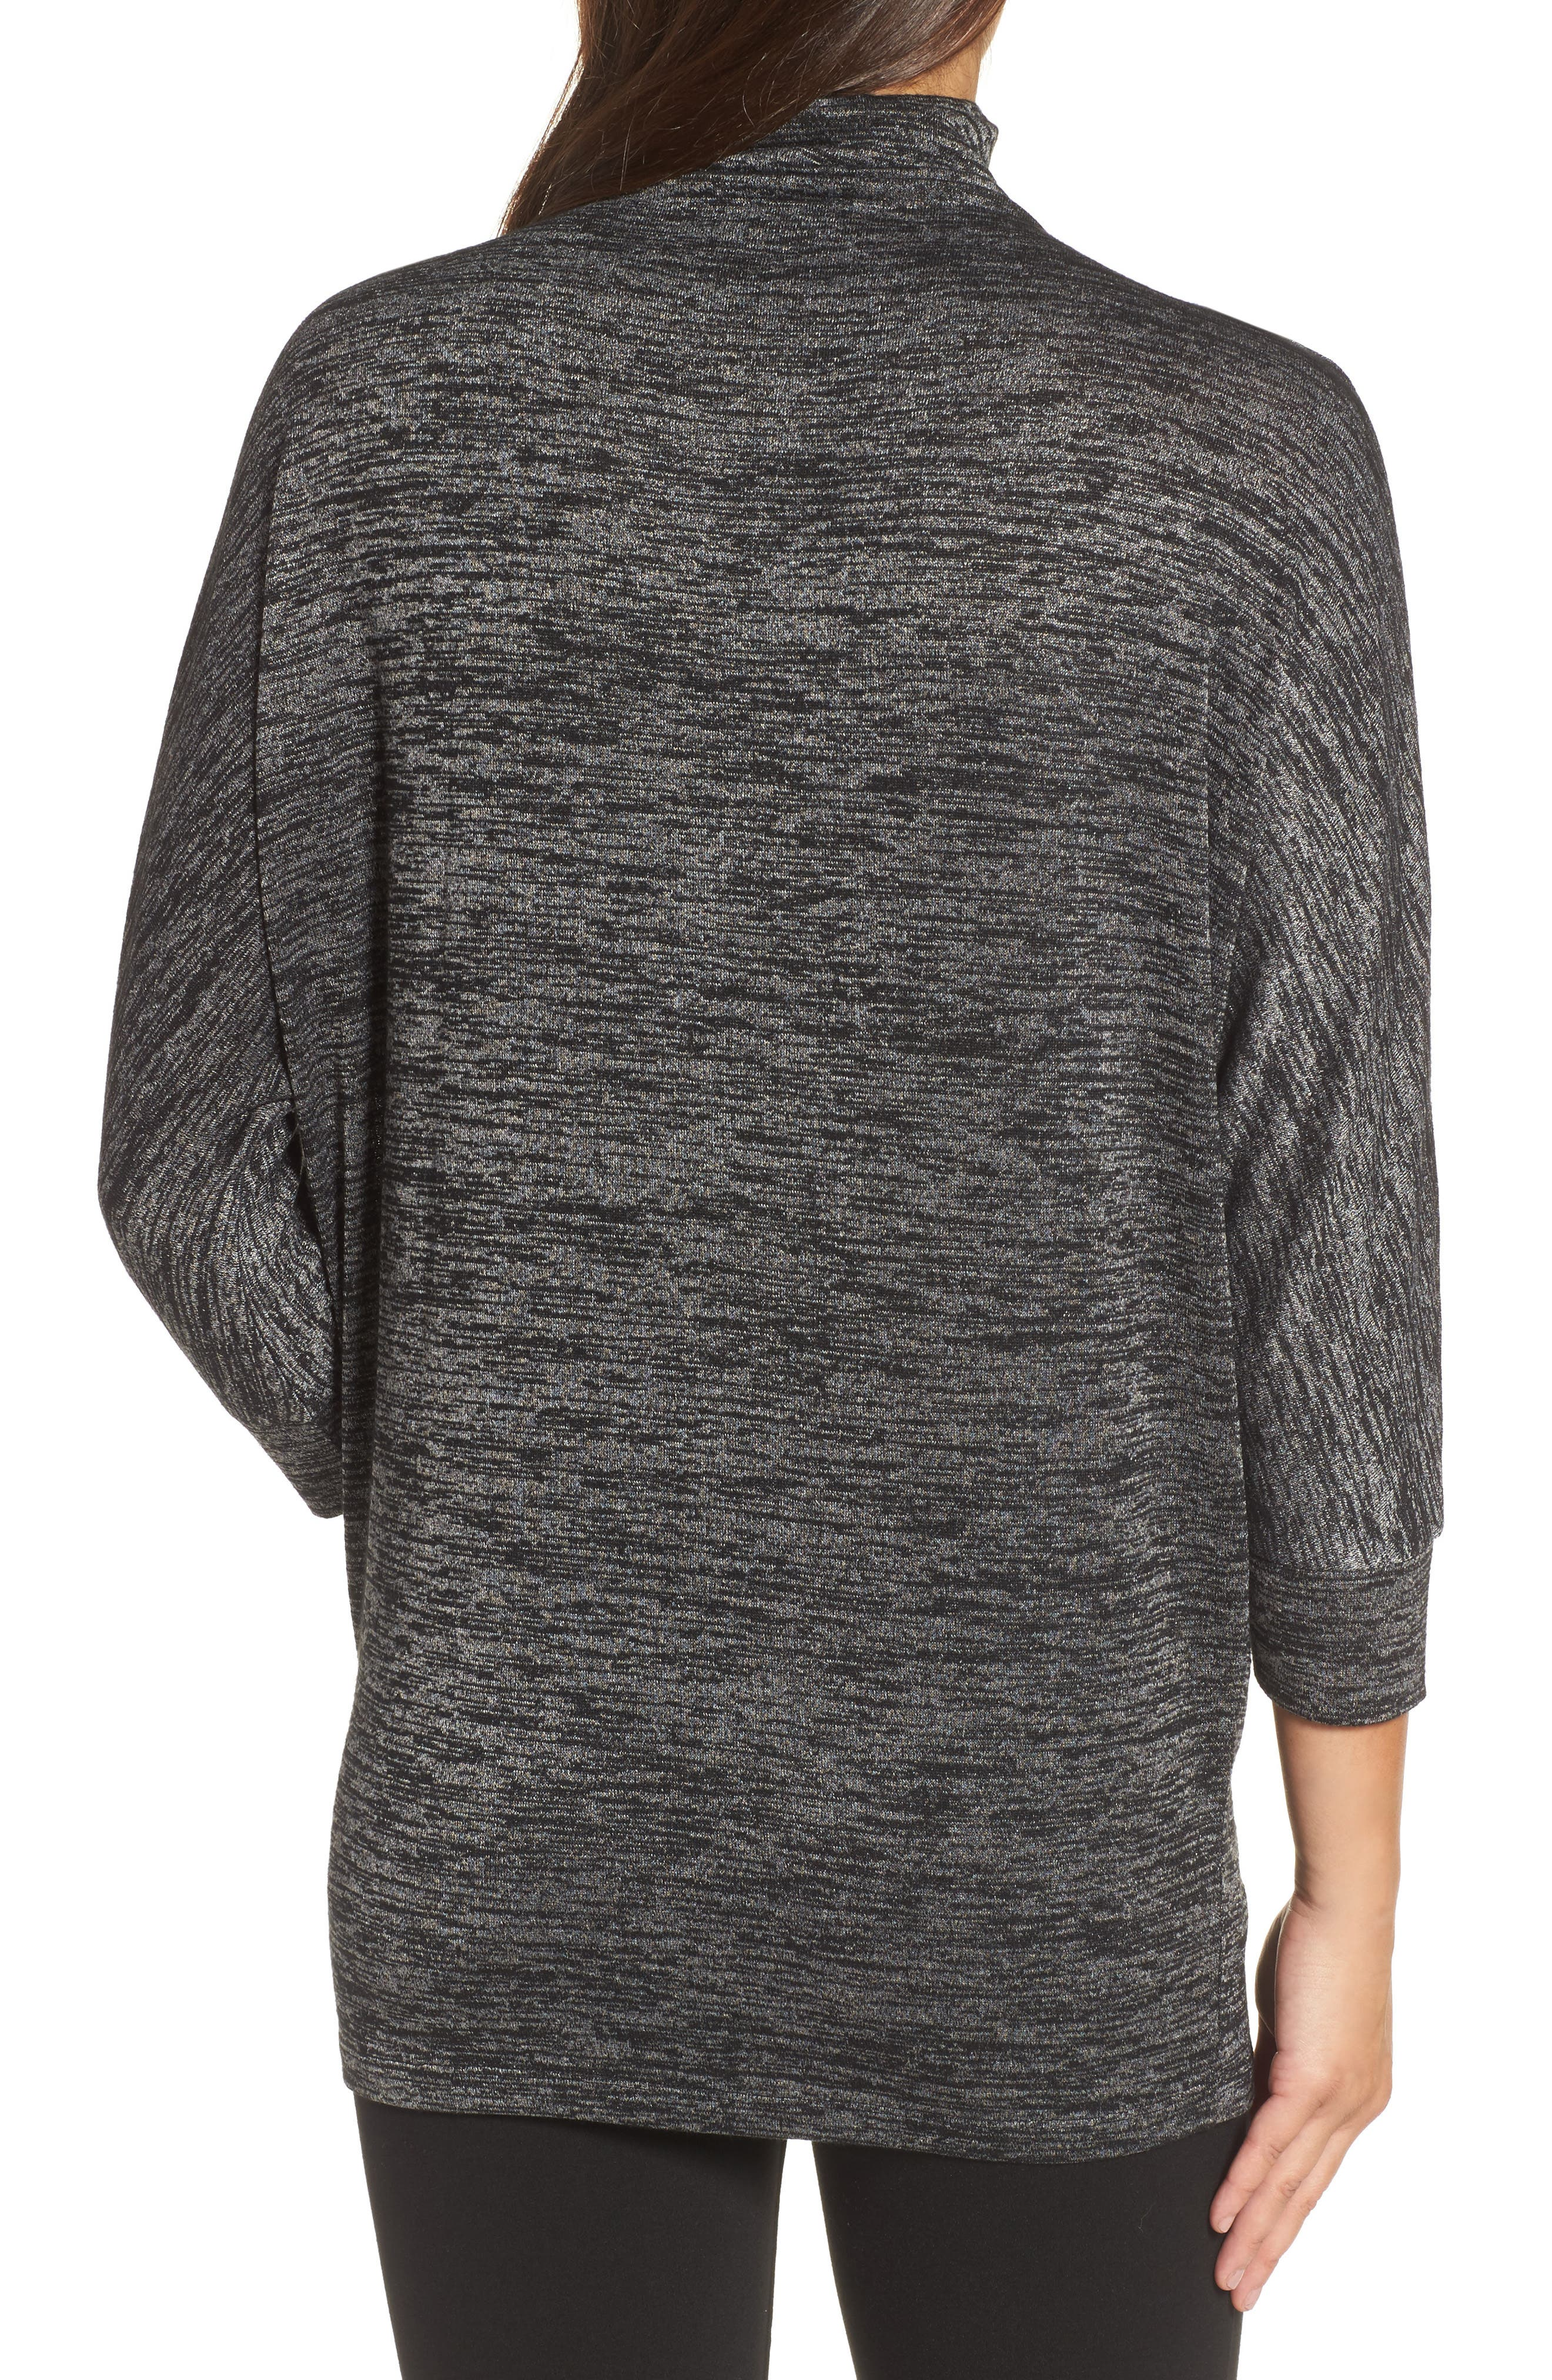 Every Occasion Mockneck Top,                             Alternate thumbnail 2, color,                             Grey Mix